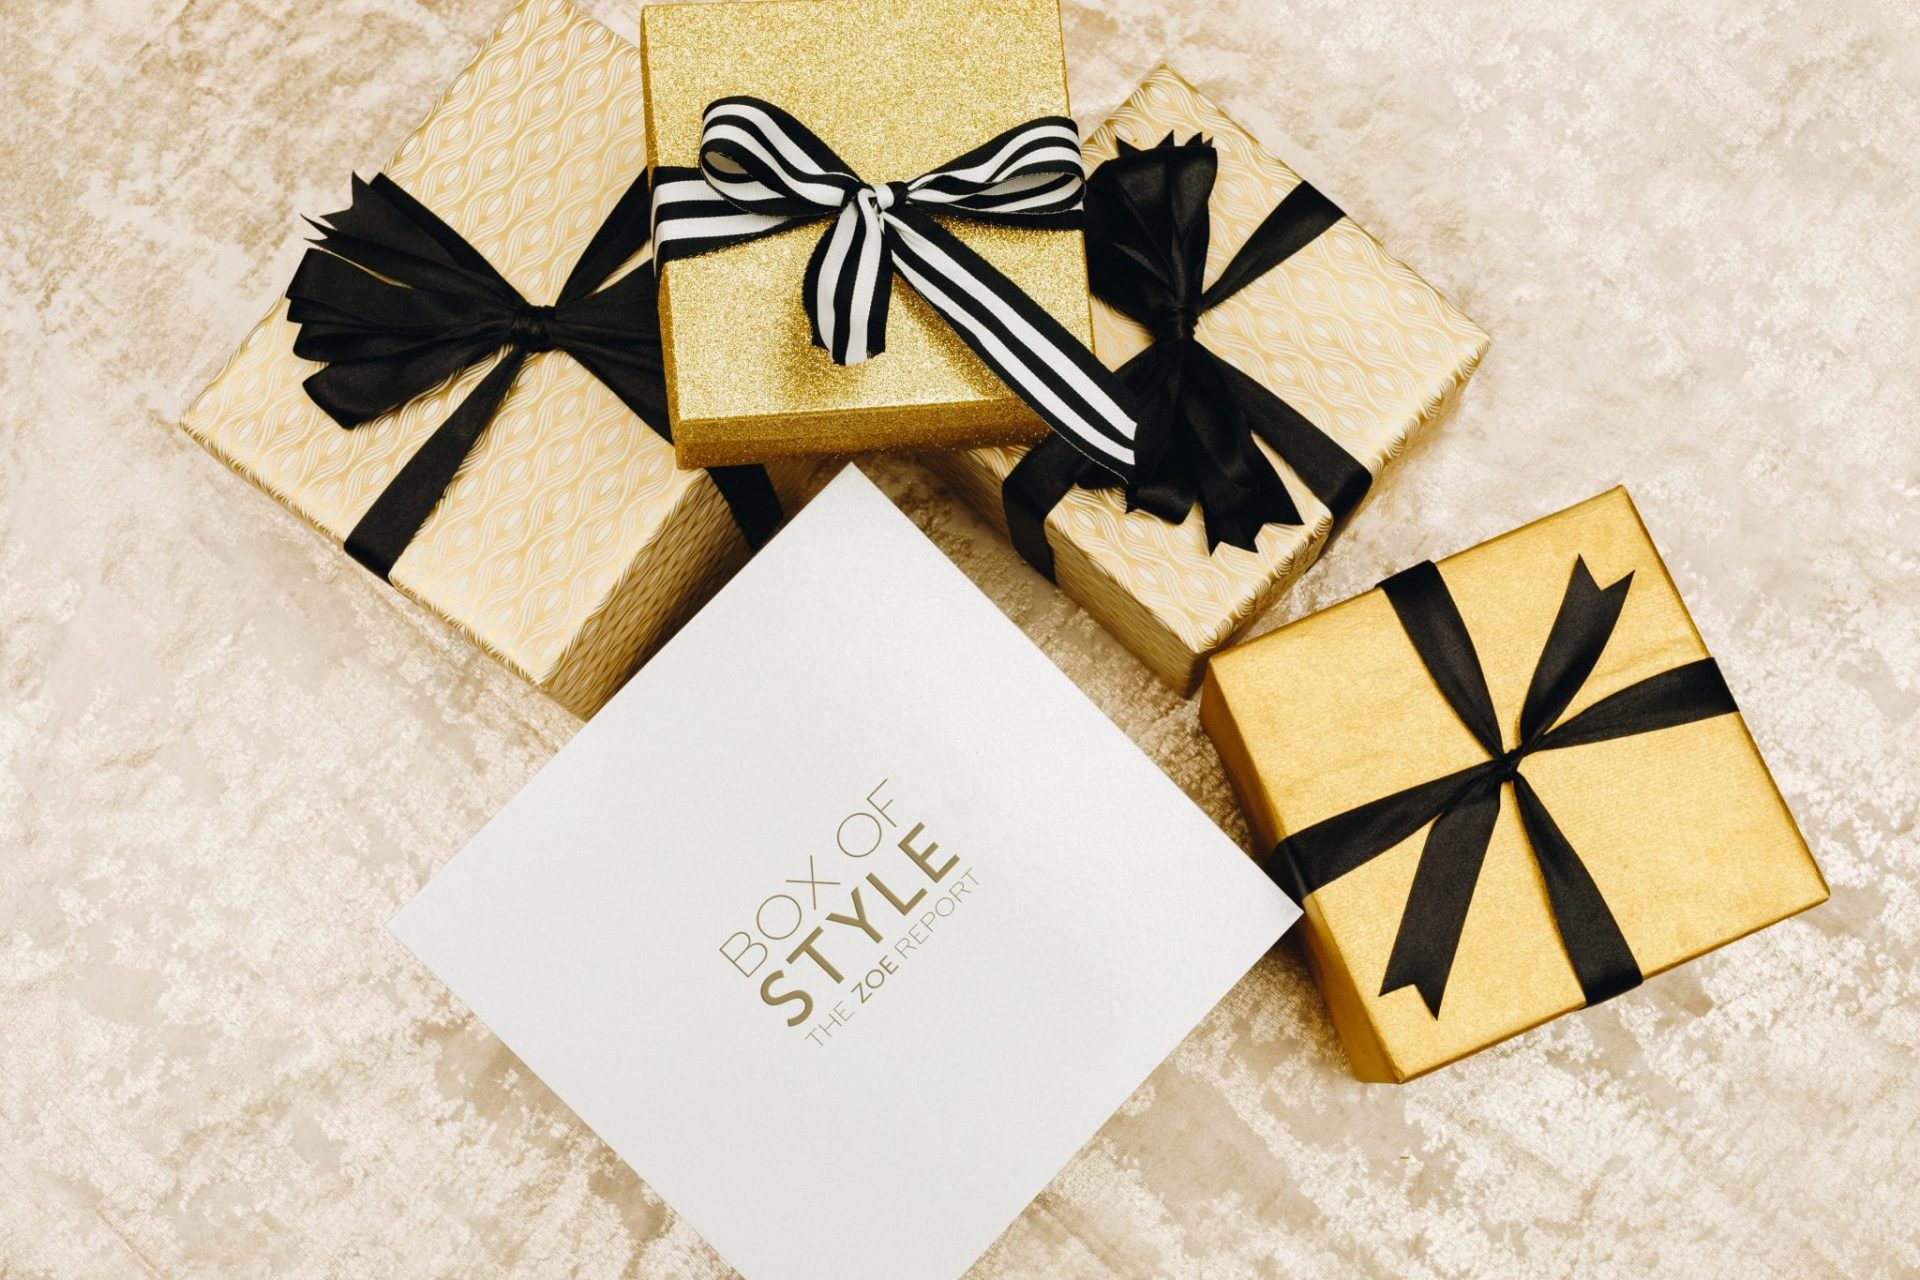 Box of Styleis a seasonal subscription box curated by The Zoe Report, the online style destination from stylist, designer and editor Rachel Zoe.